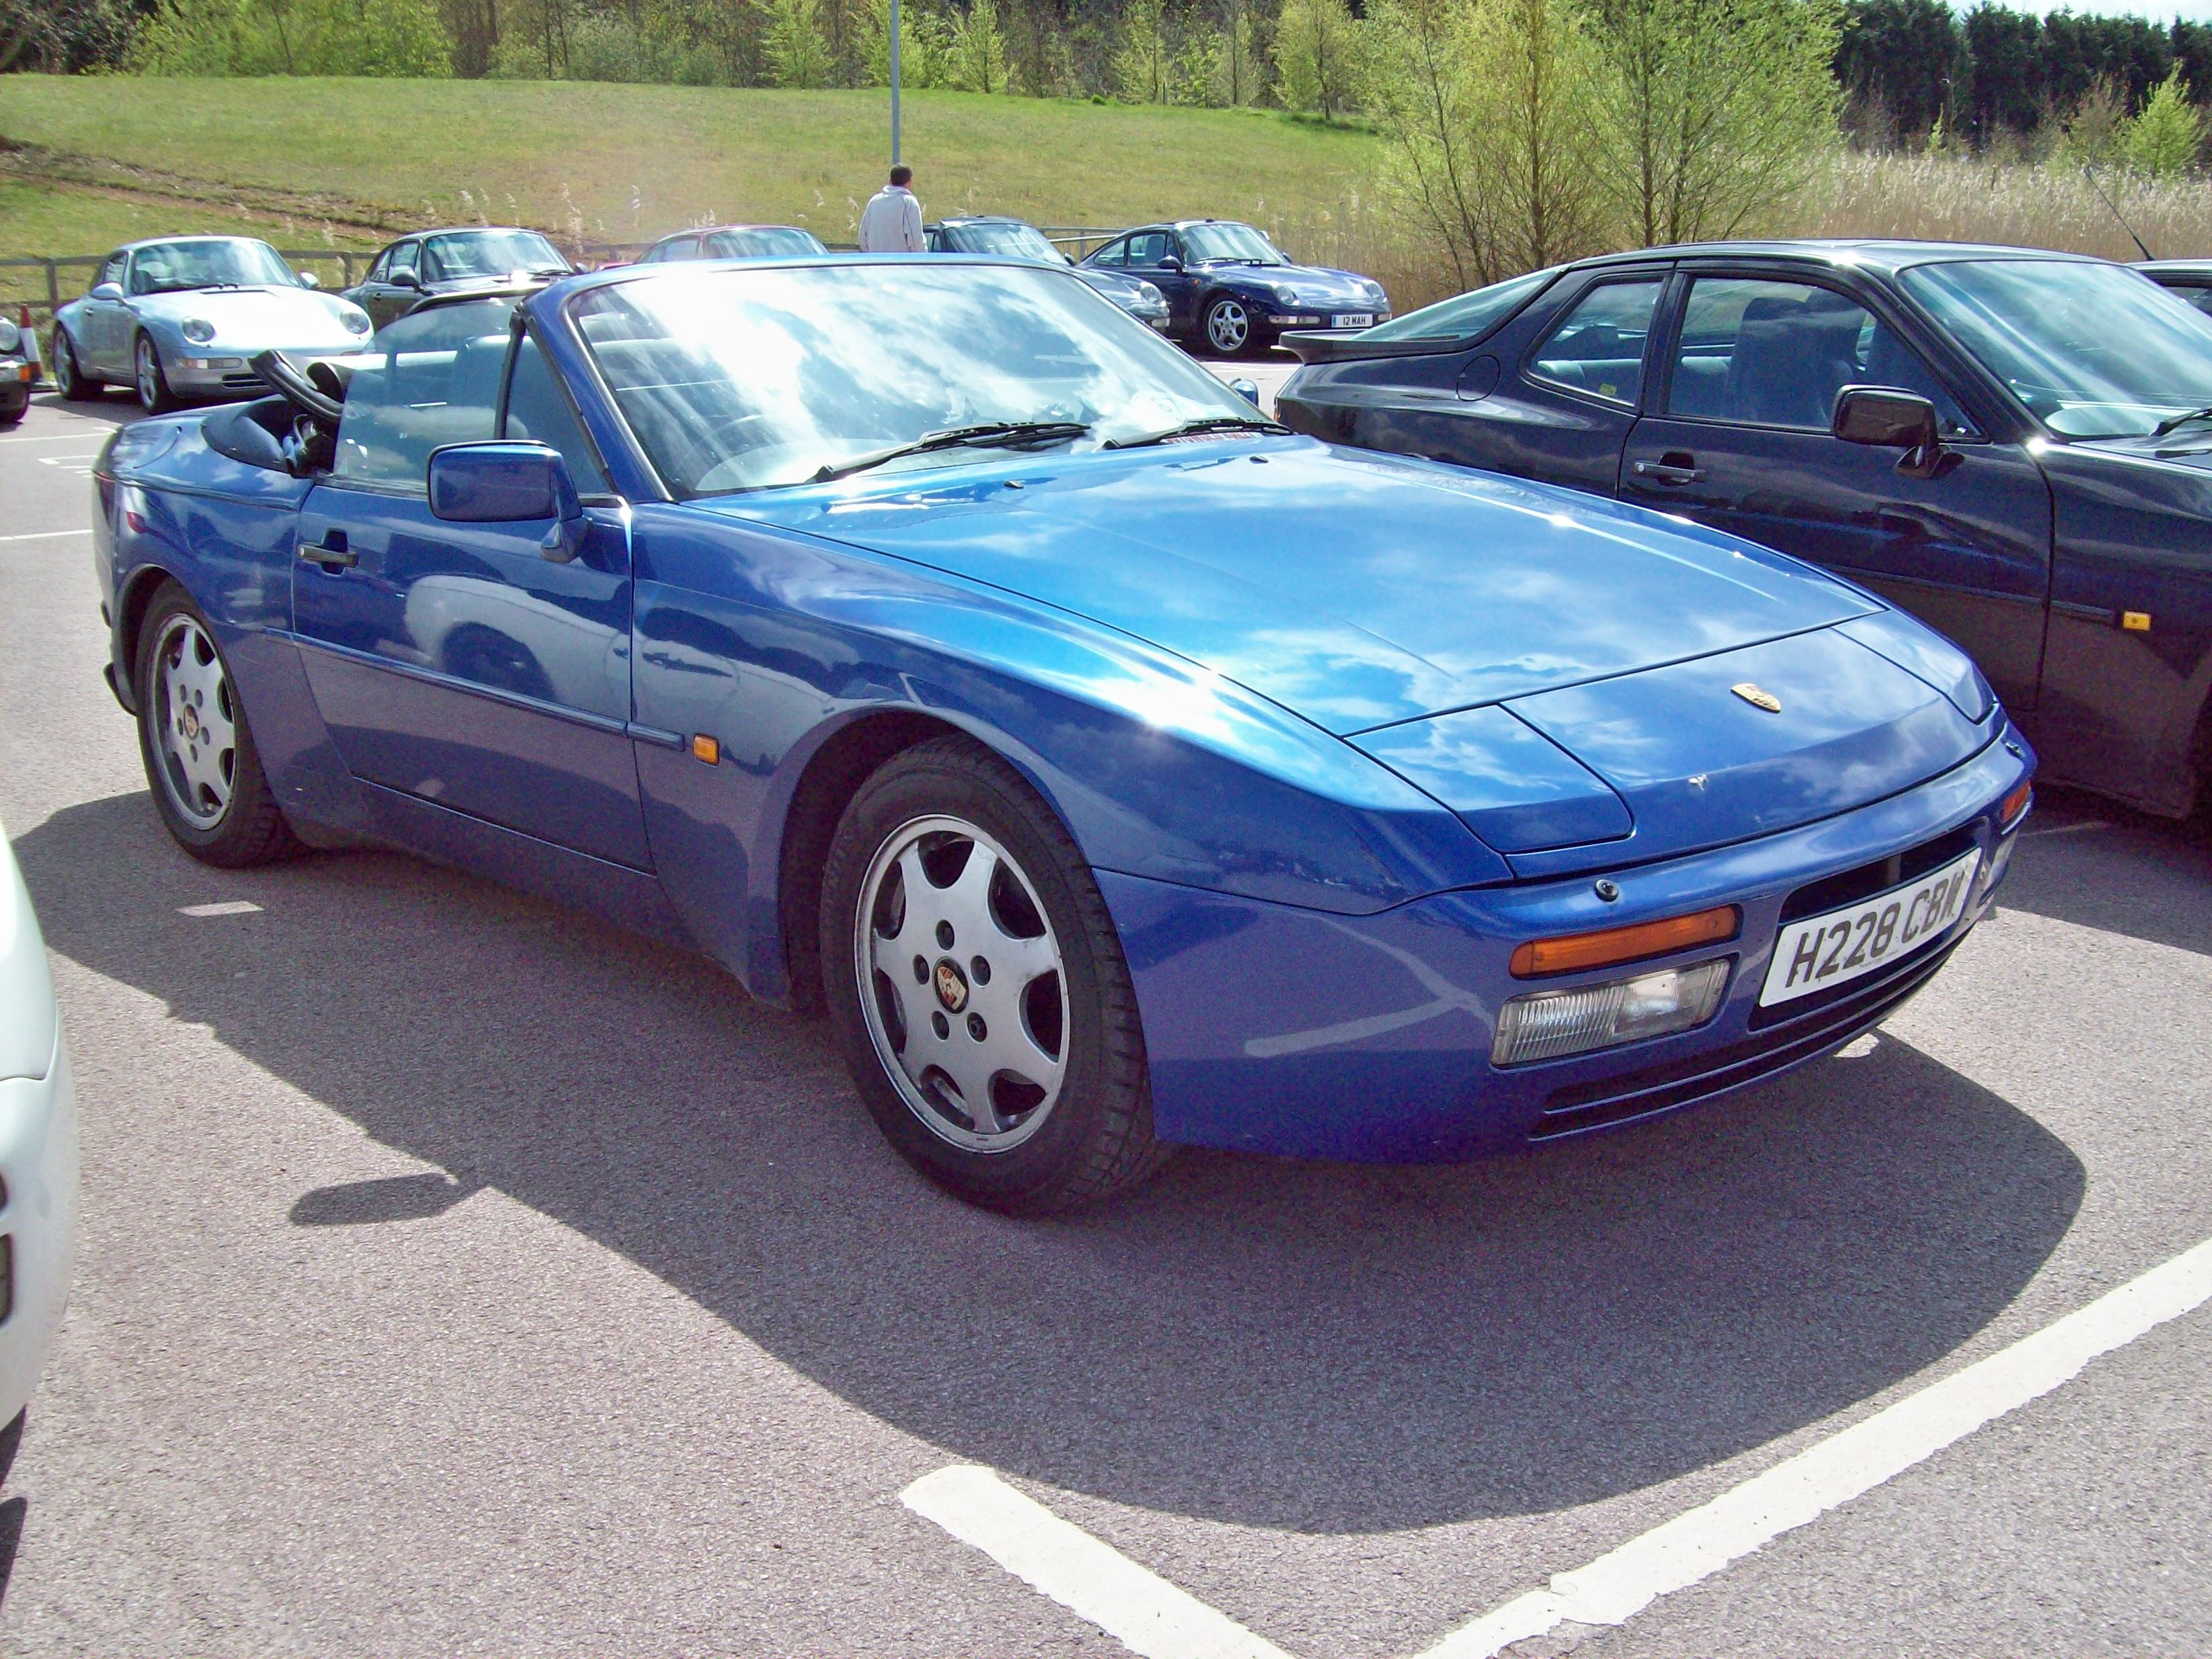 79 Porsche 944 S2 Cabriolet (1991) | Flickr - Photo Sharing!